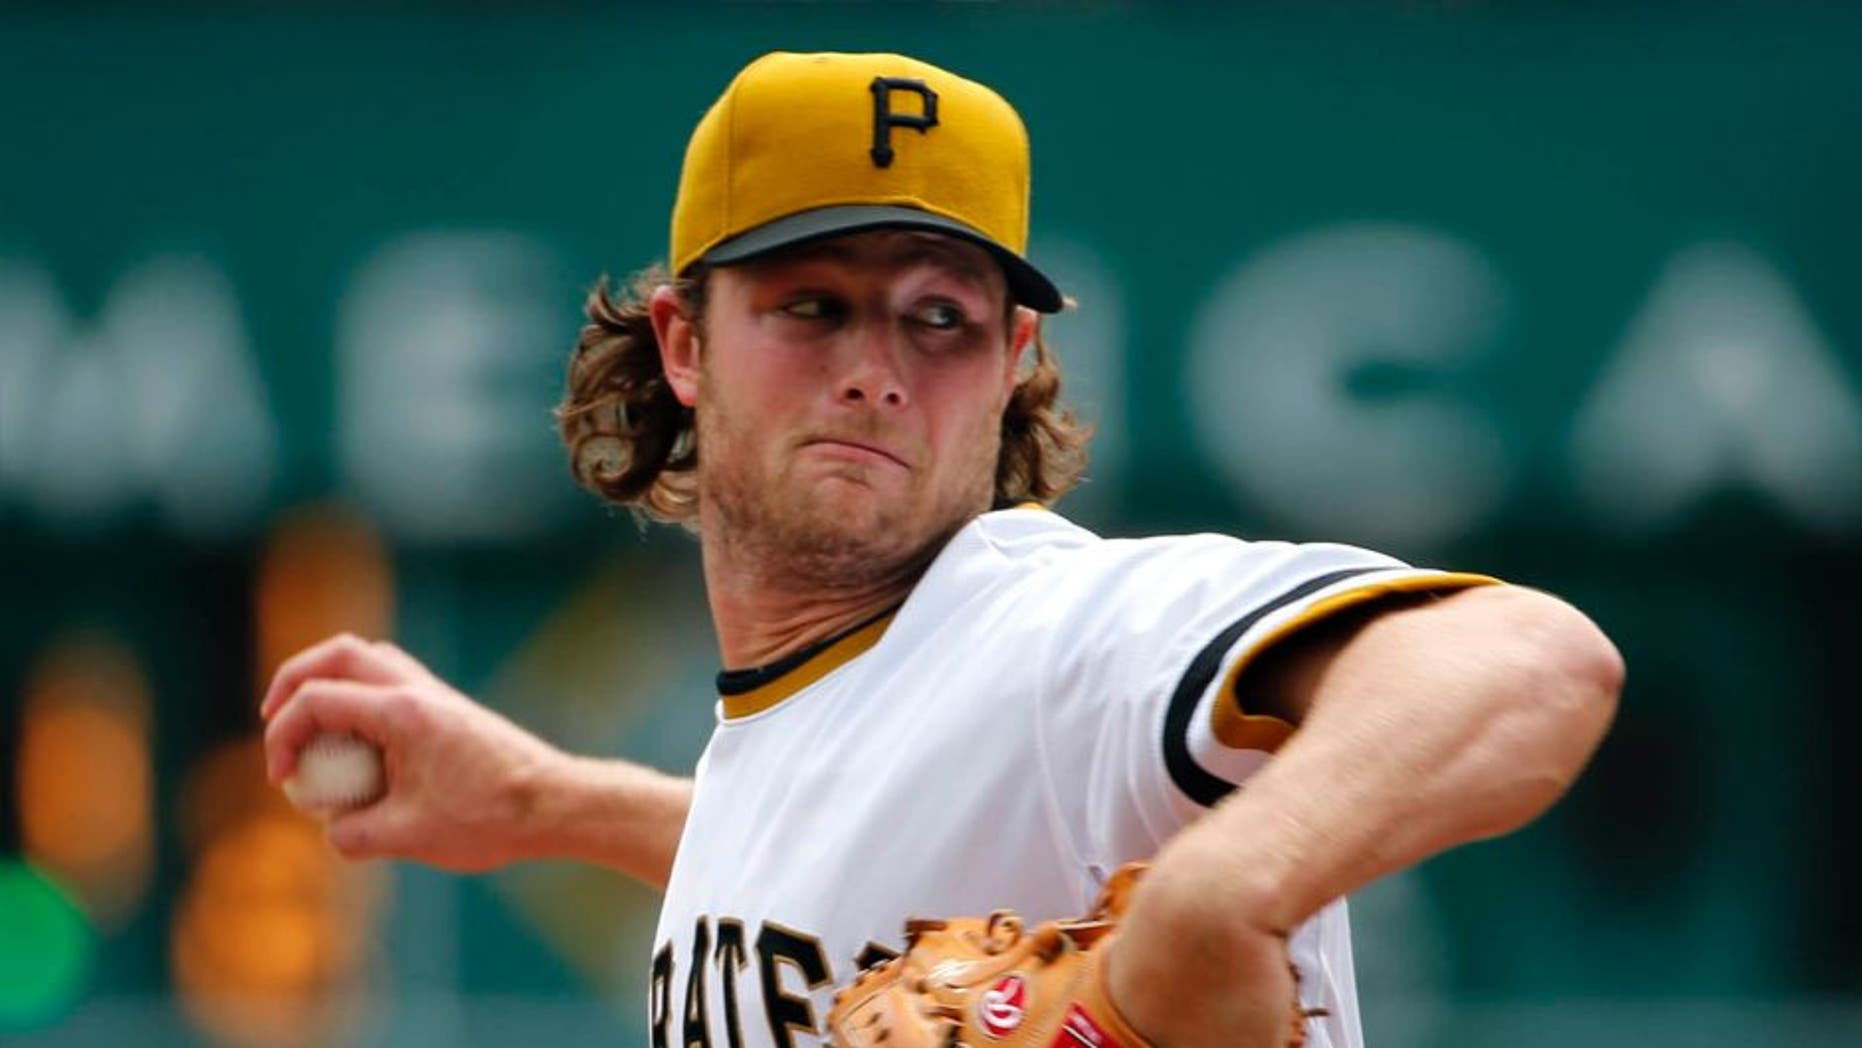 Pittsburgh Pirates starting pitcher Gerrit Cole throws in the first inning against the Milwaukee Brewers in Pittsburgh, Sunday, April 19, 2015.